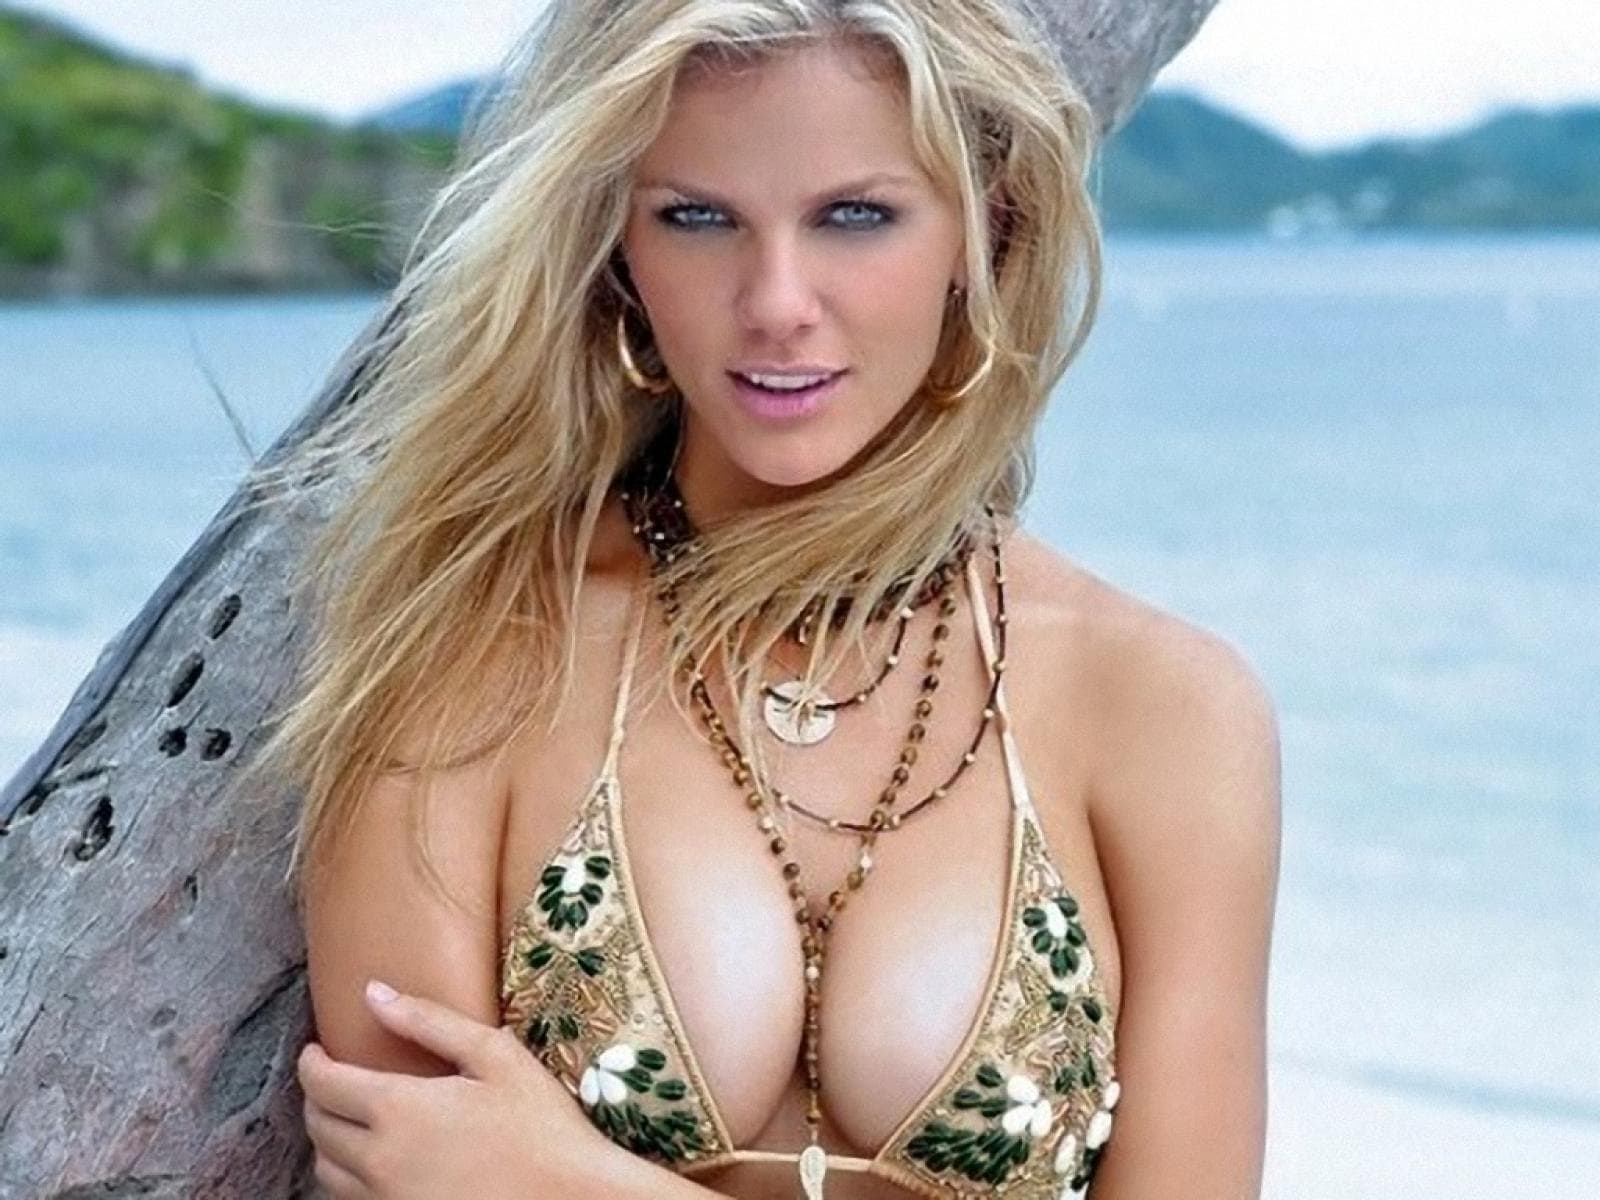 Brooklyn Decker HQ wallpapers